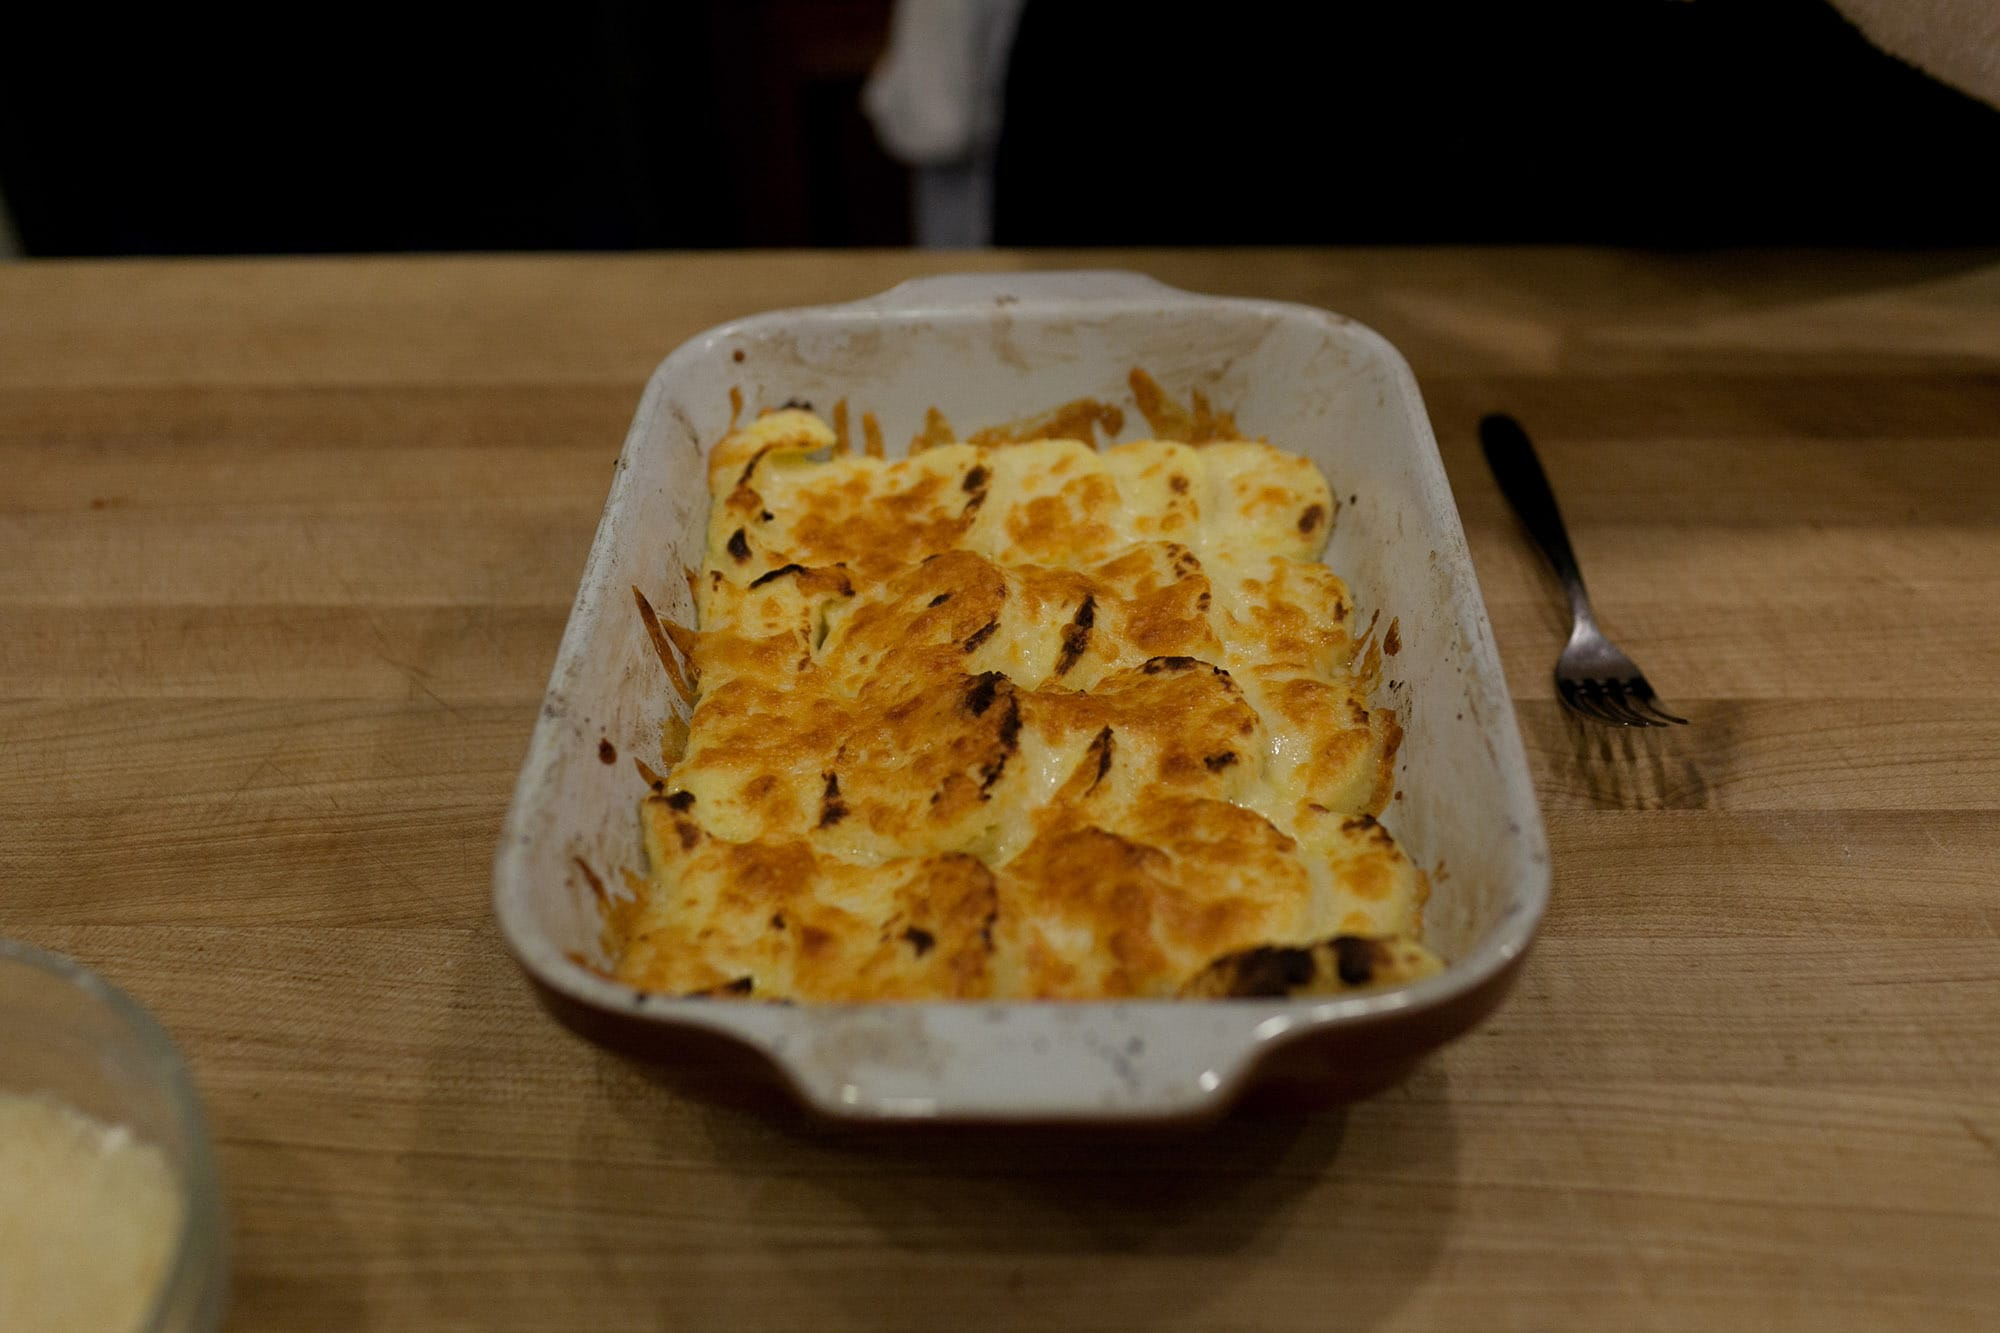 Semolina cakes with fontina cheese at the Fall Gnocchi Making Class at the Lincoln Square Chopping Block in Chicago, Illinois